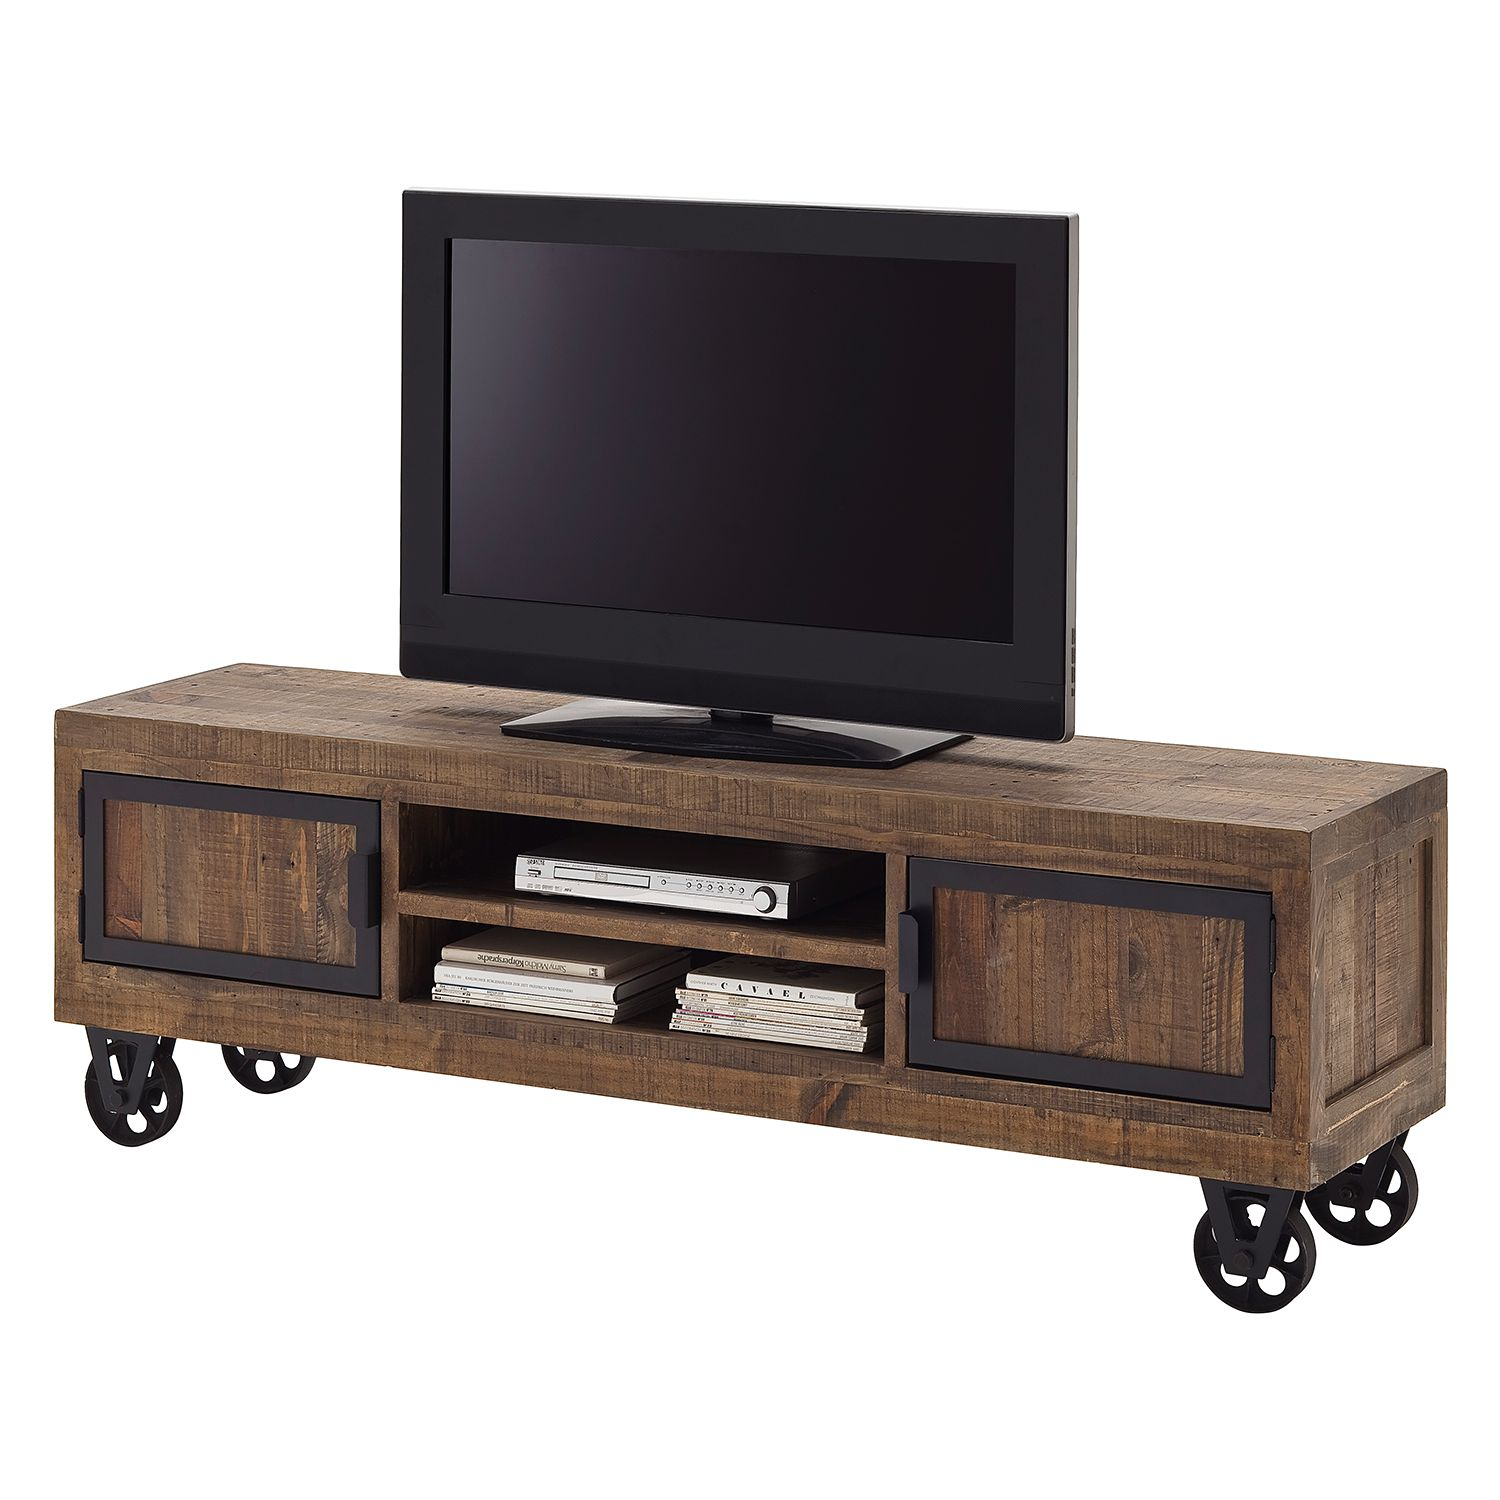 tv lowboard mit rollen preis vergleich 2016. Black Bedroom Furniture Sets. Home Design Ideas